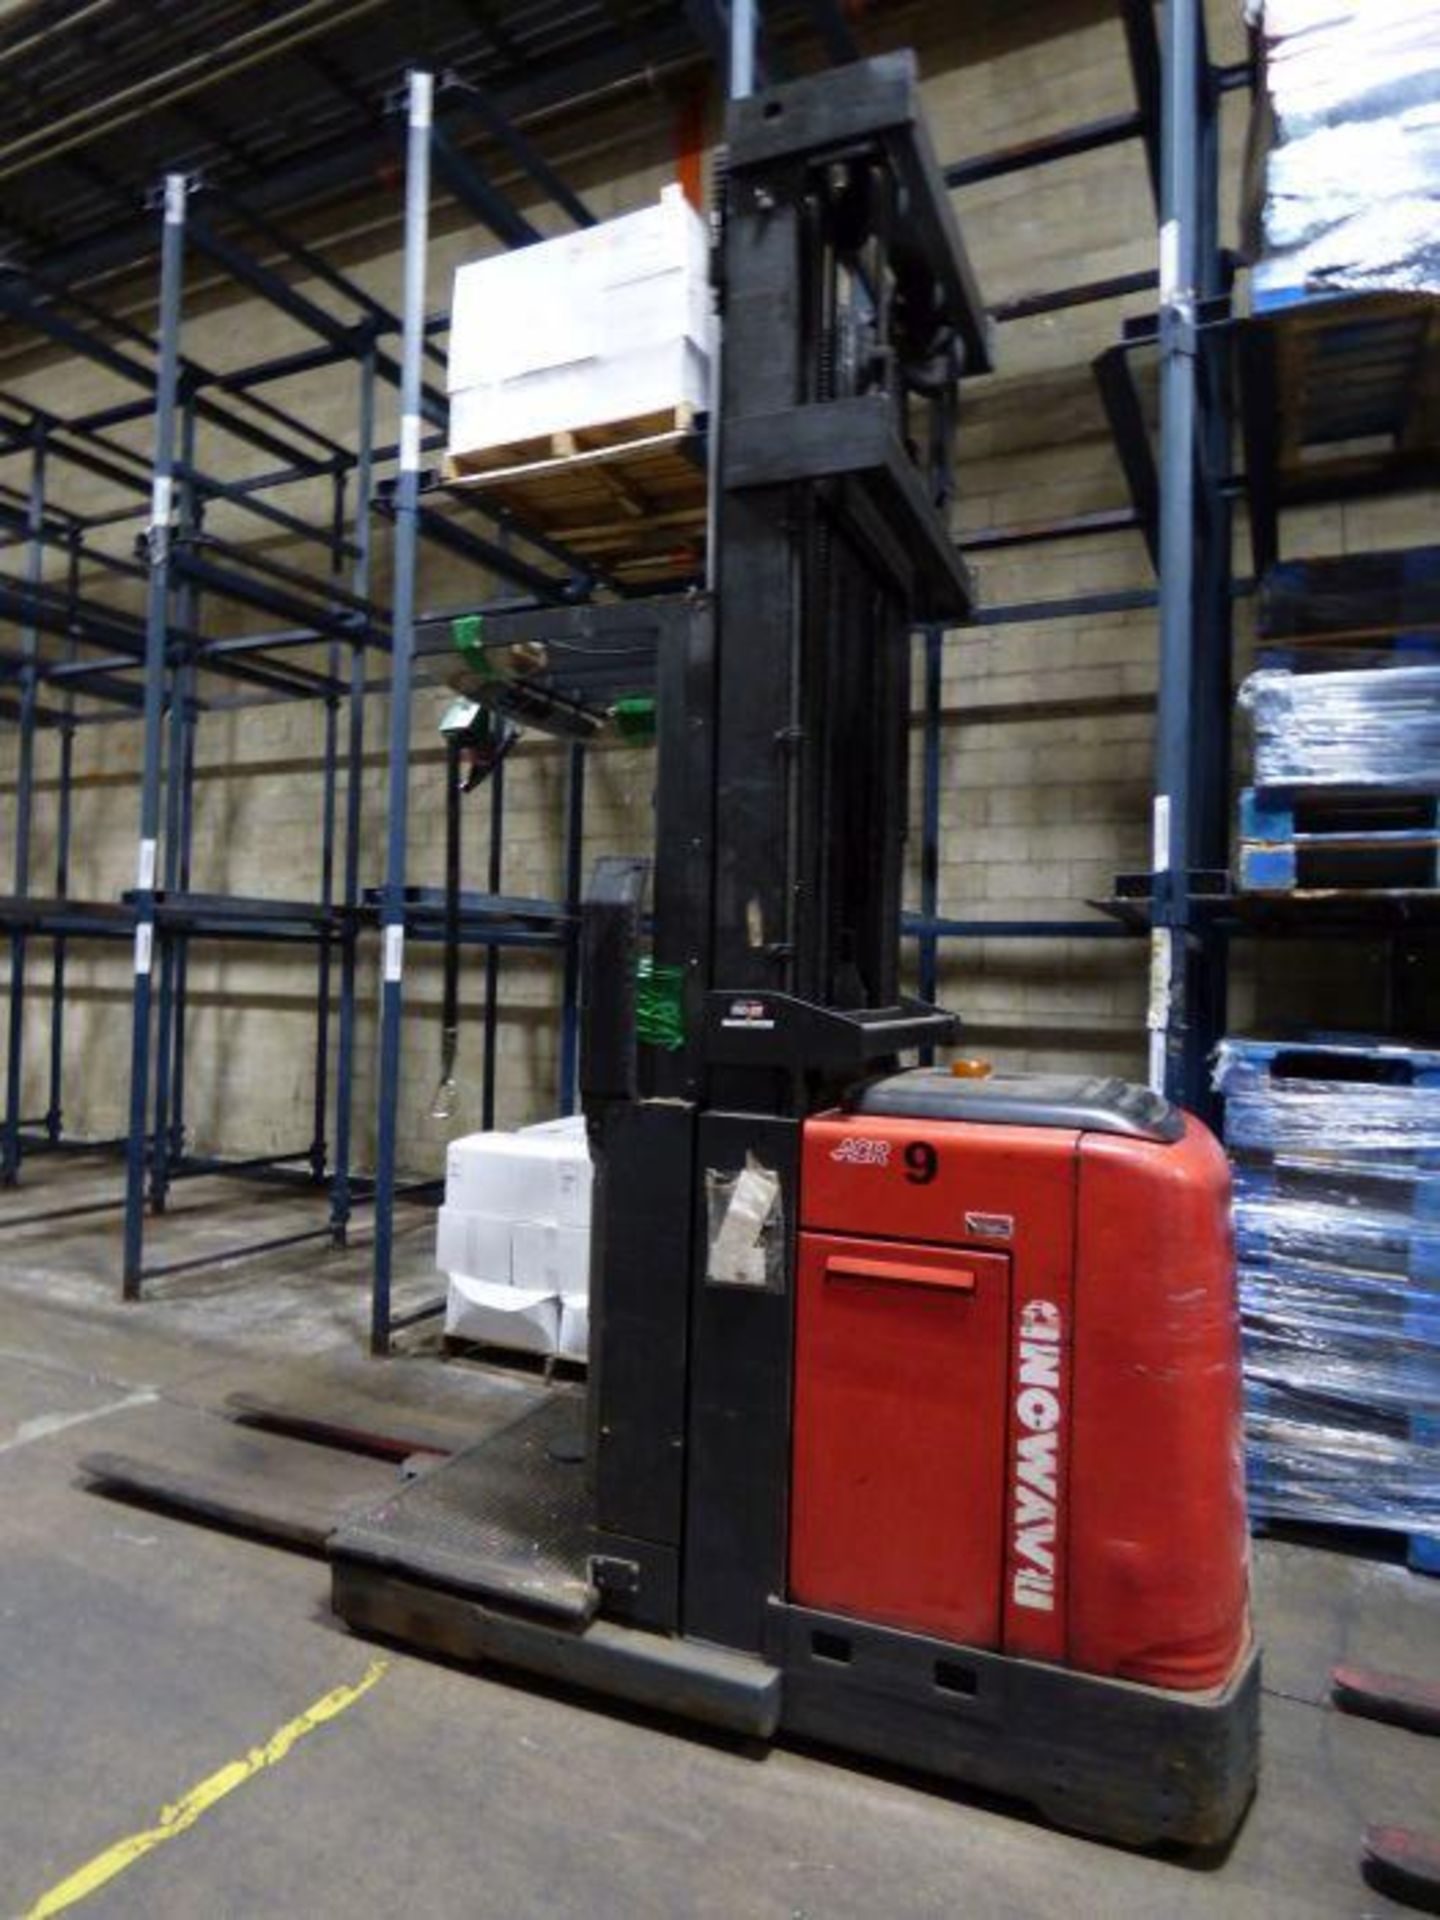 Lot 1300 - Raymond Order Picker Forklift